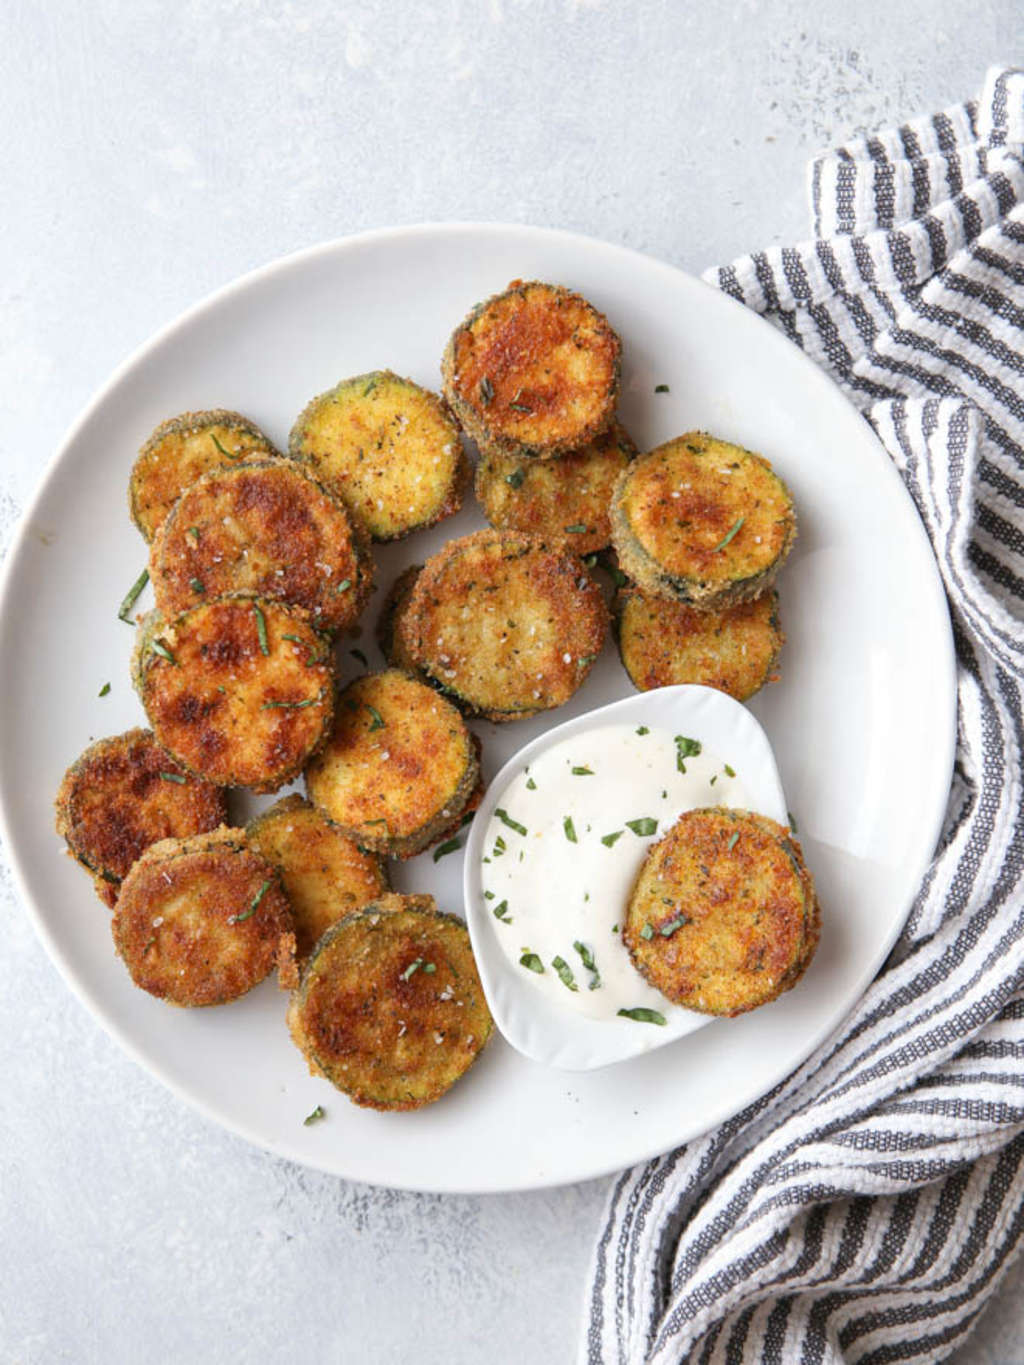 These Zucchini Chips Are Going to Be Your New Favorite Snack